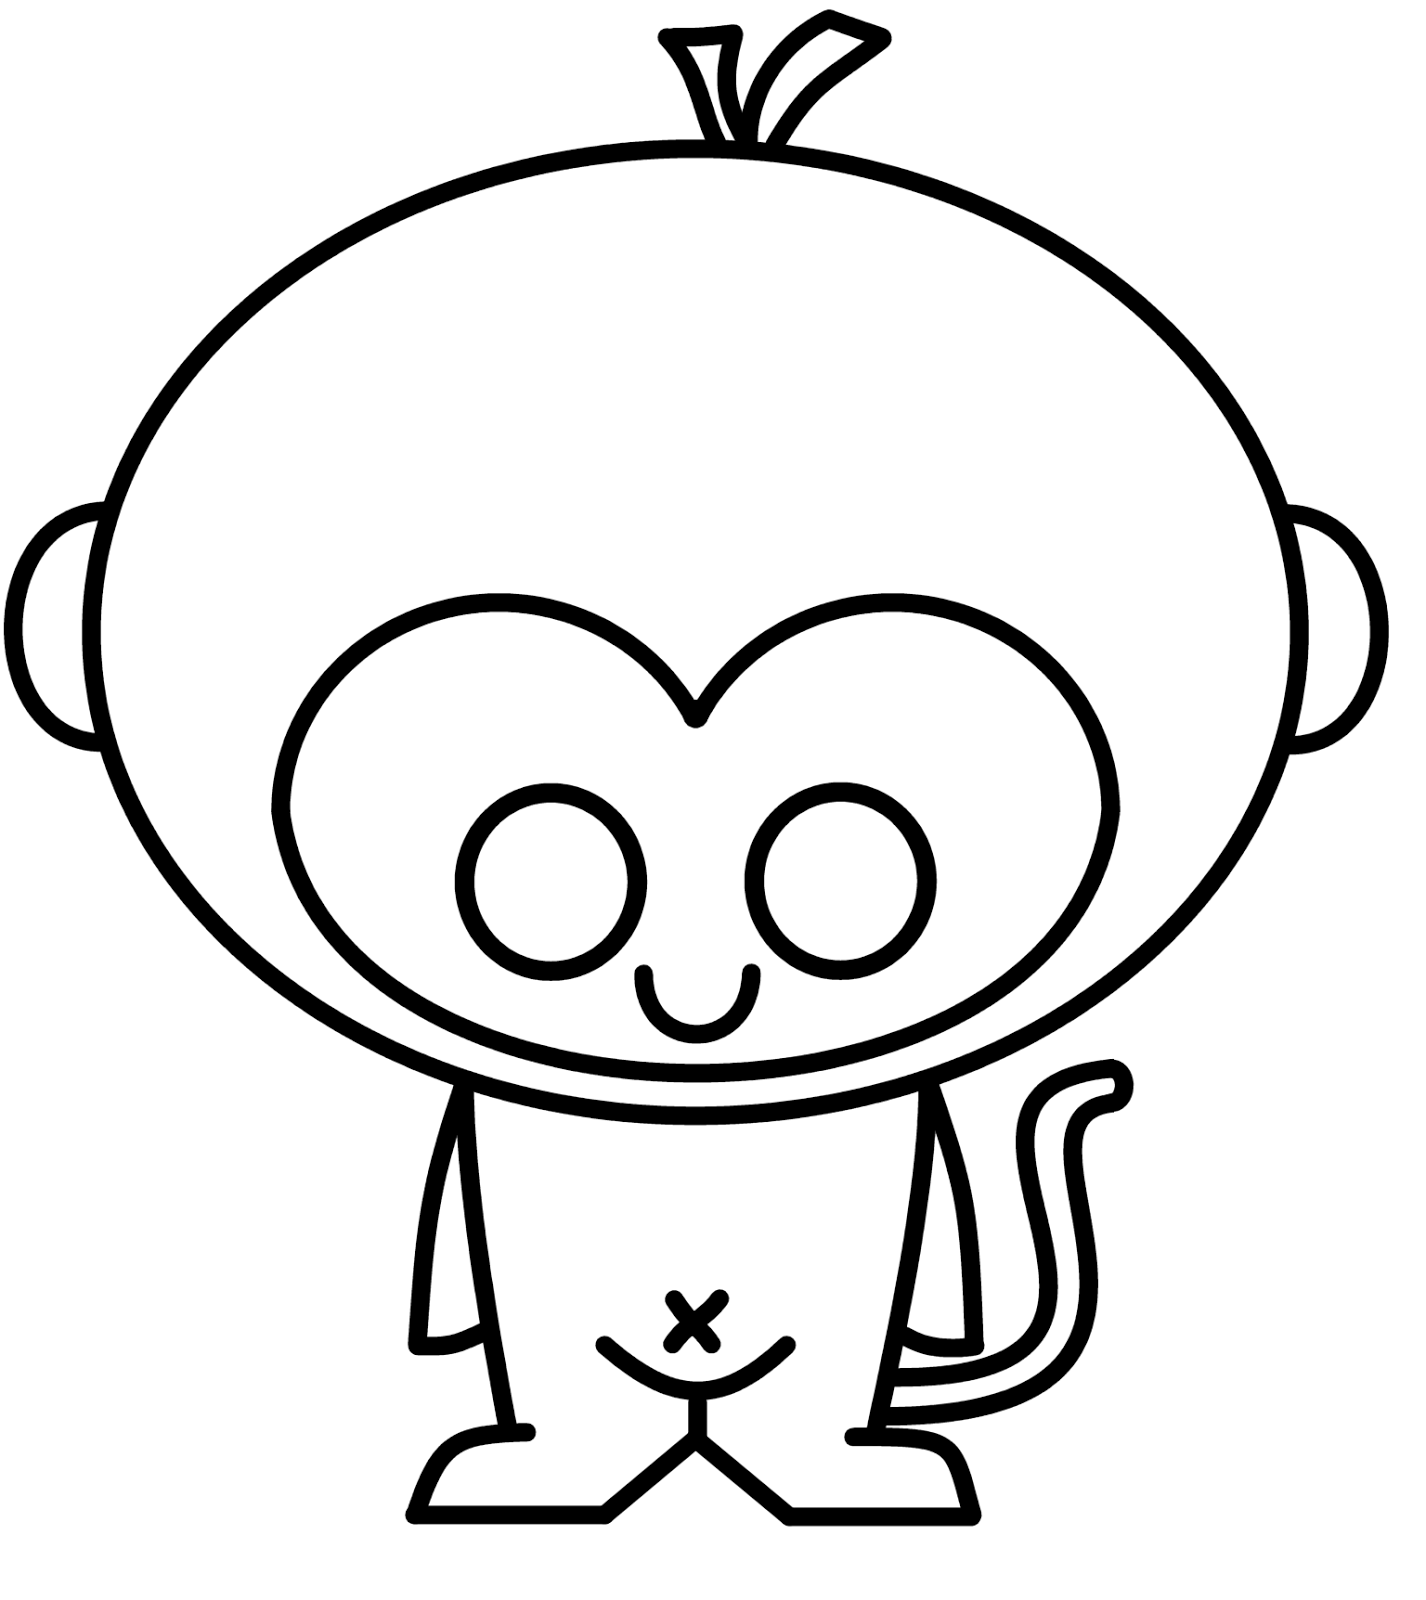 1426x1600 Cute Monkey Drawings Car Interior Design Monkey Images